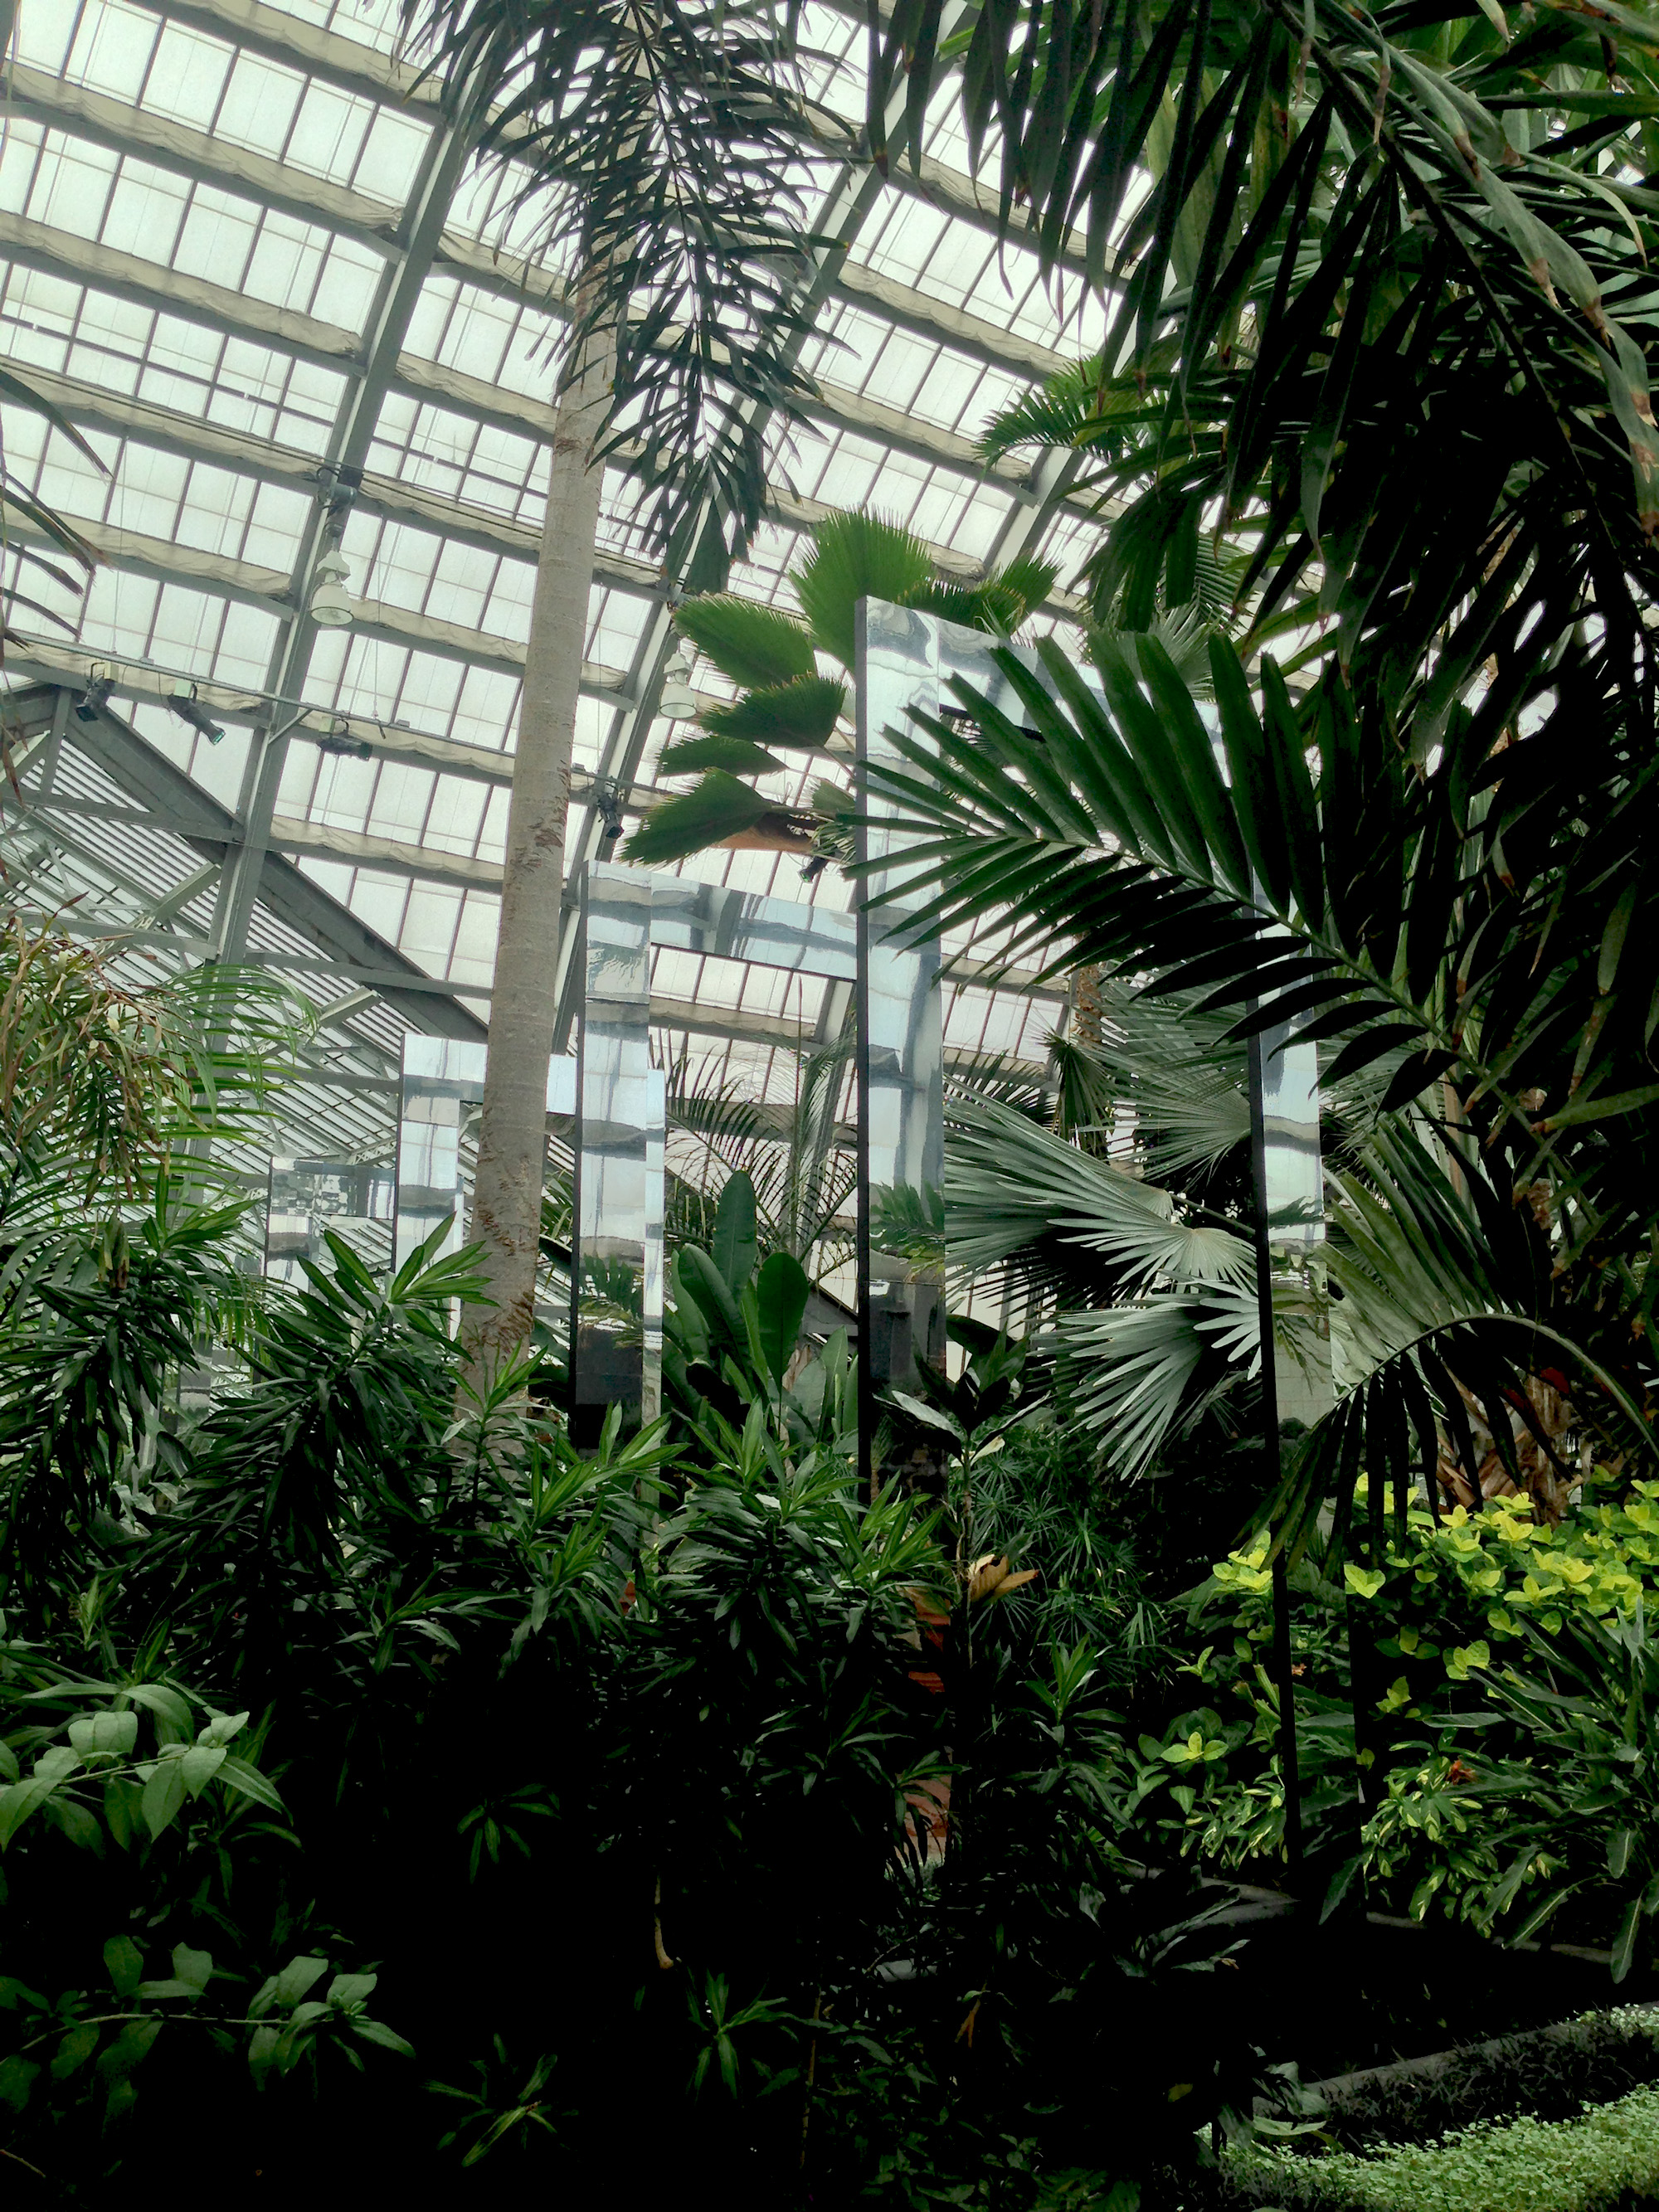 Luftwerk installation in the Palm room, Garfield Park Conservatory, Chicago Illinois